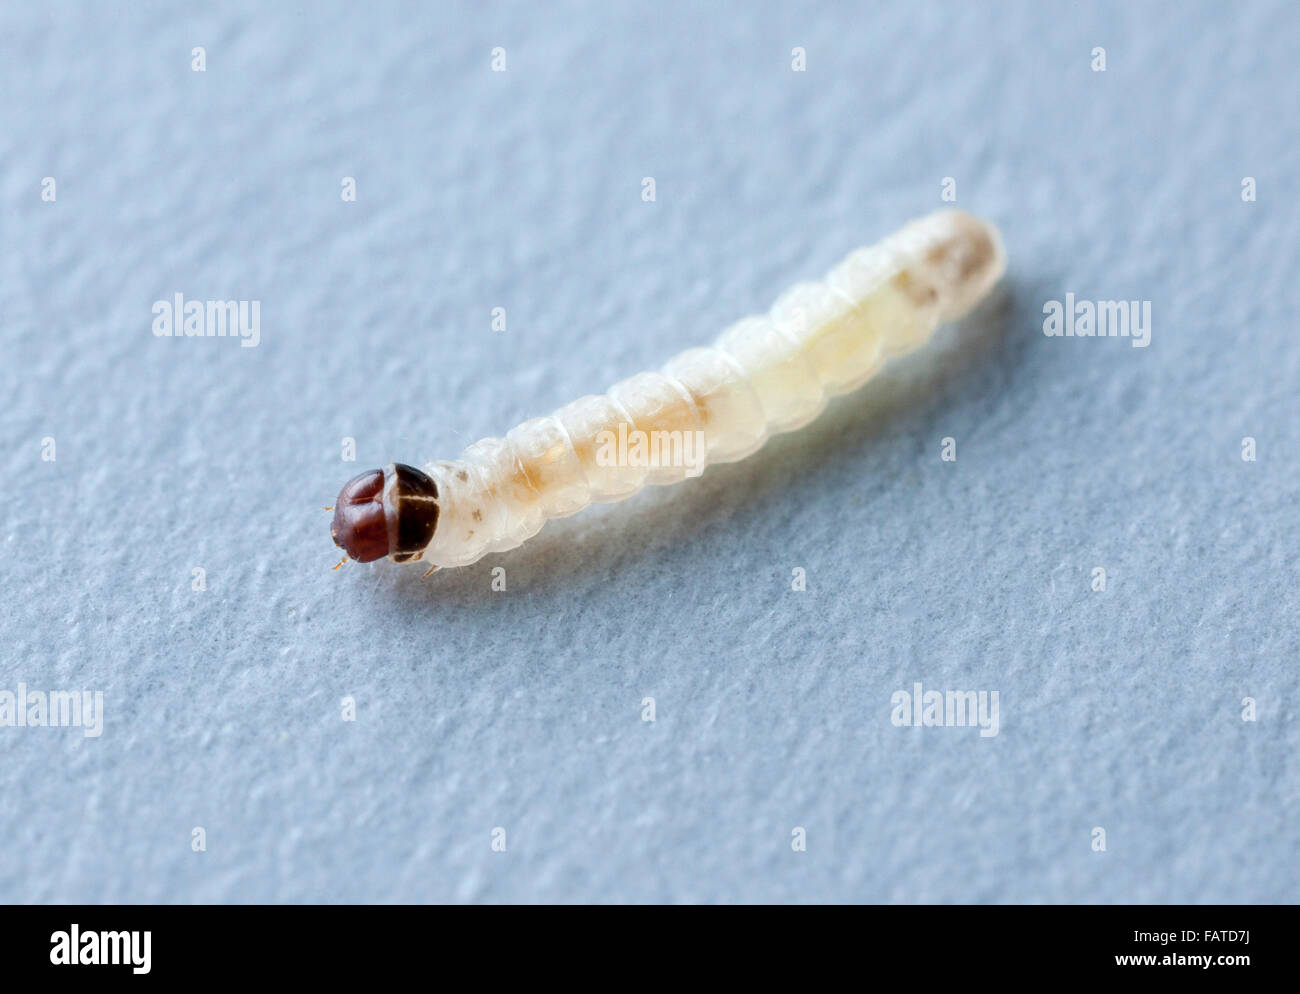 Larva Of Tineola Bisselliella Common Clothes Moth Stock Photo